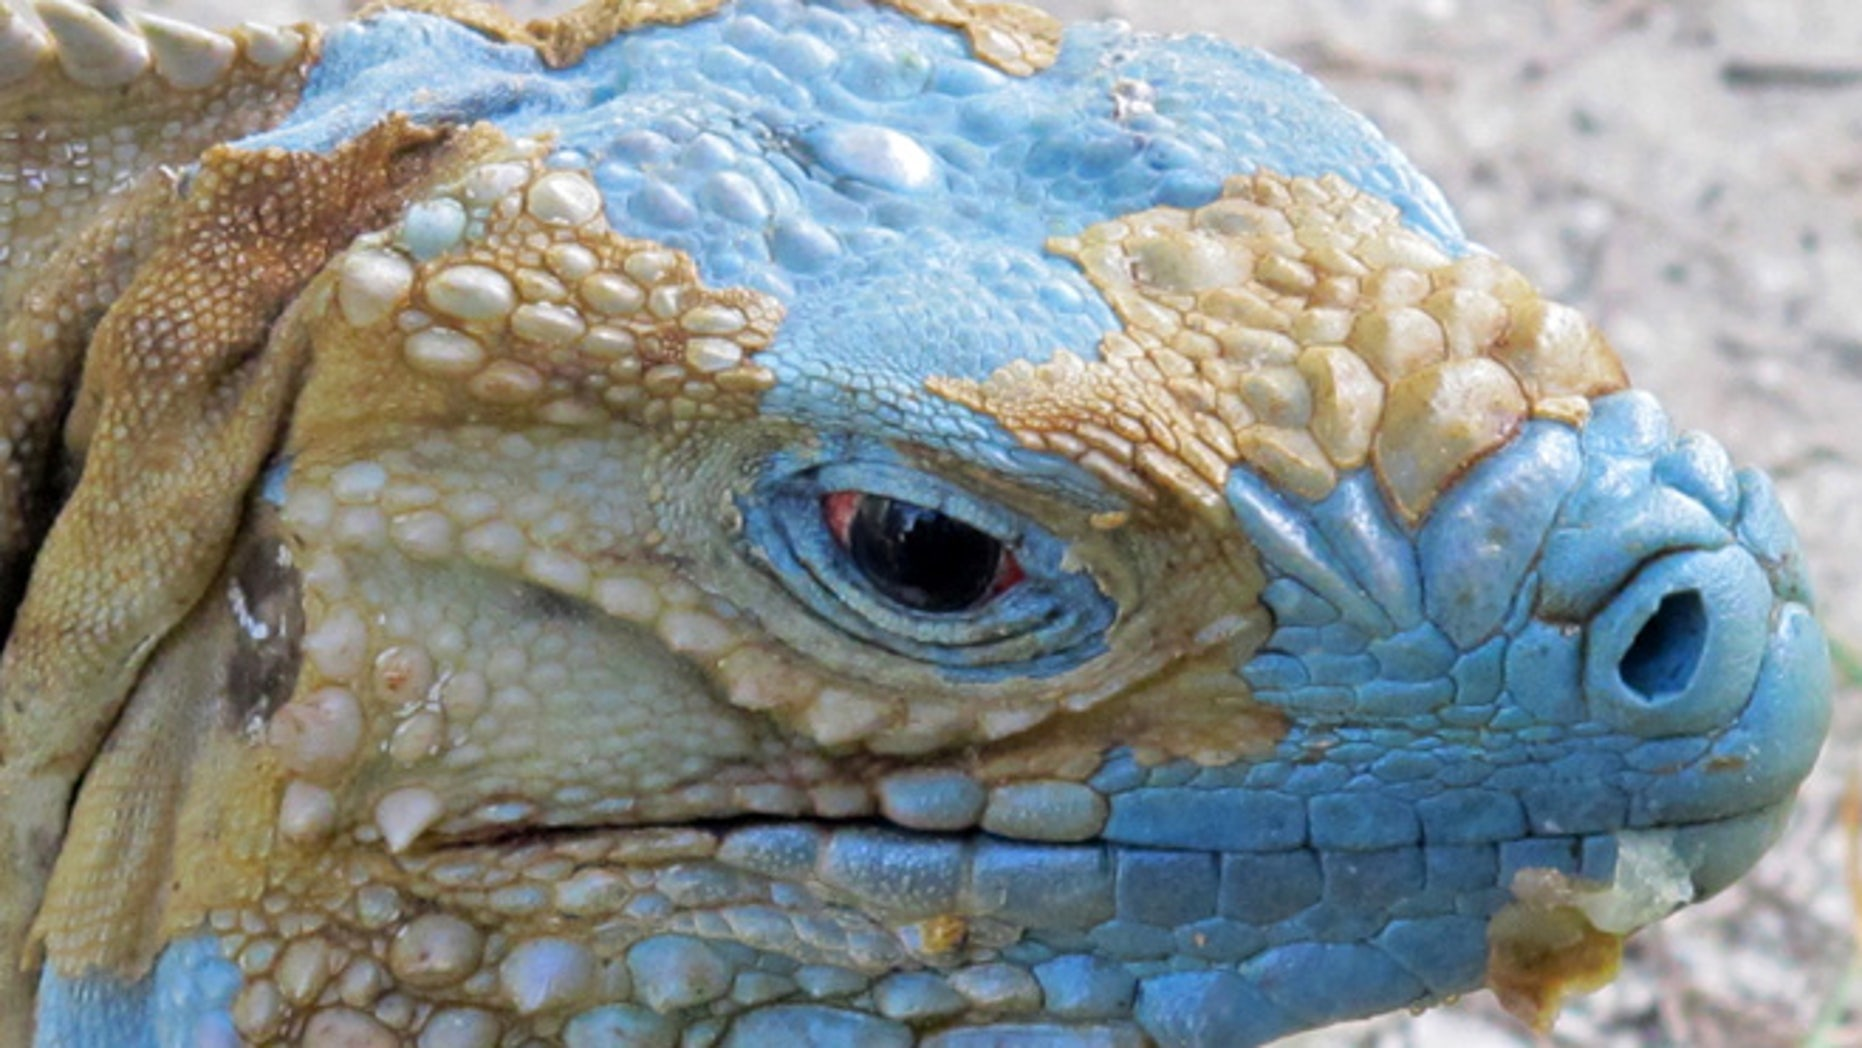 """An adult Grand Cayman Blue Iguana nicknamed """"Biter"""" is shown shedding its dead skin at the Queen Elizabeth II Botanic Park on the island of Grand Cayman. Roughly 700 blue iguanas breed and roam free in protected woodlands on the eastern side of Grand Cayman in the western Caribbean that is the only place where the critically endangered animals are found in the wild."""